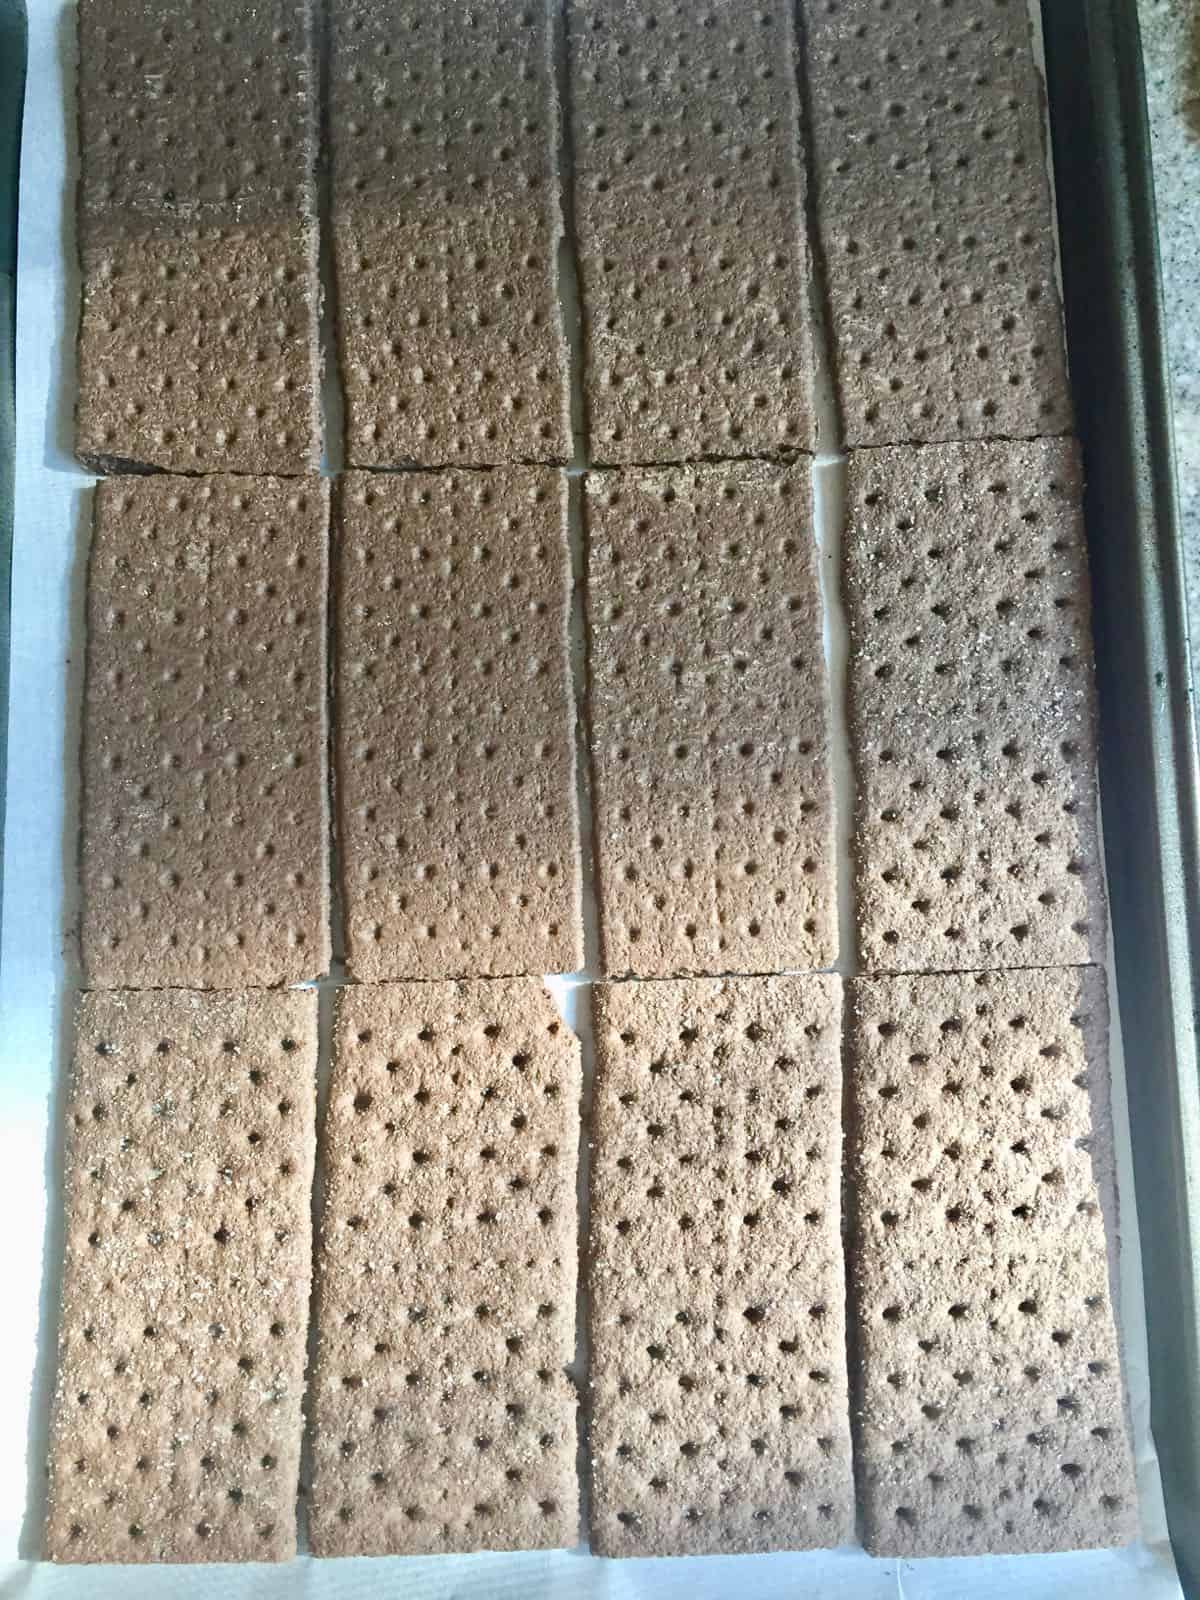 Chocolate graham crackers on a baking sheet.